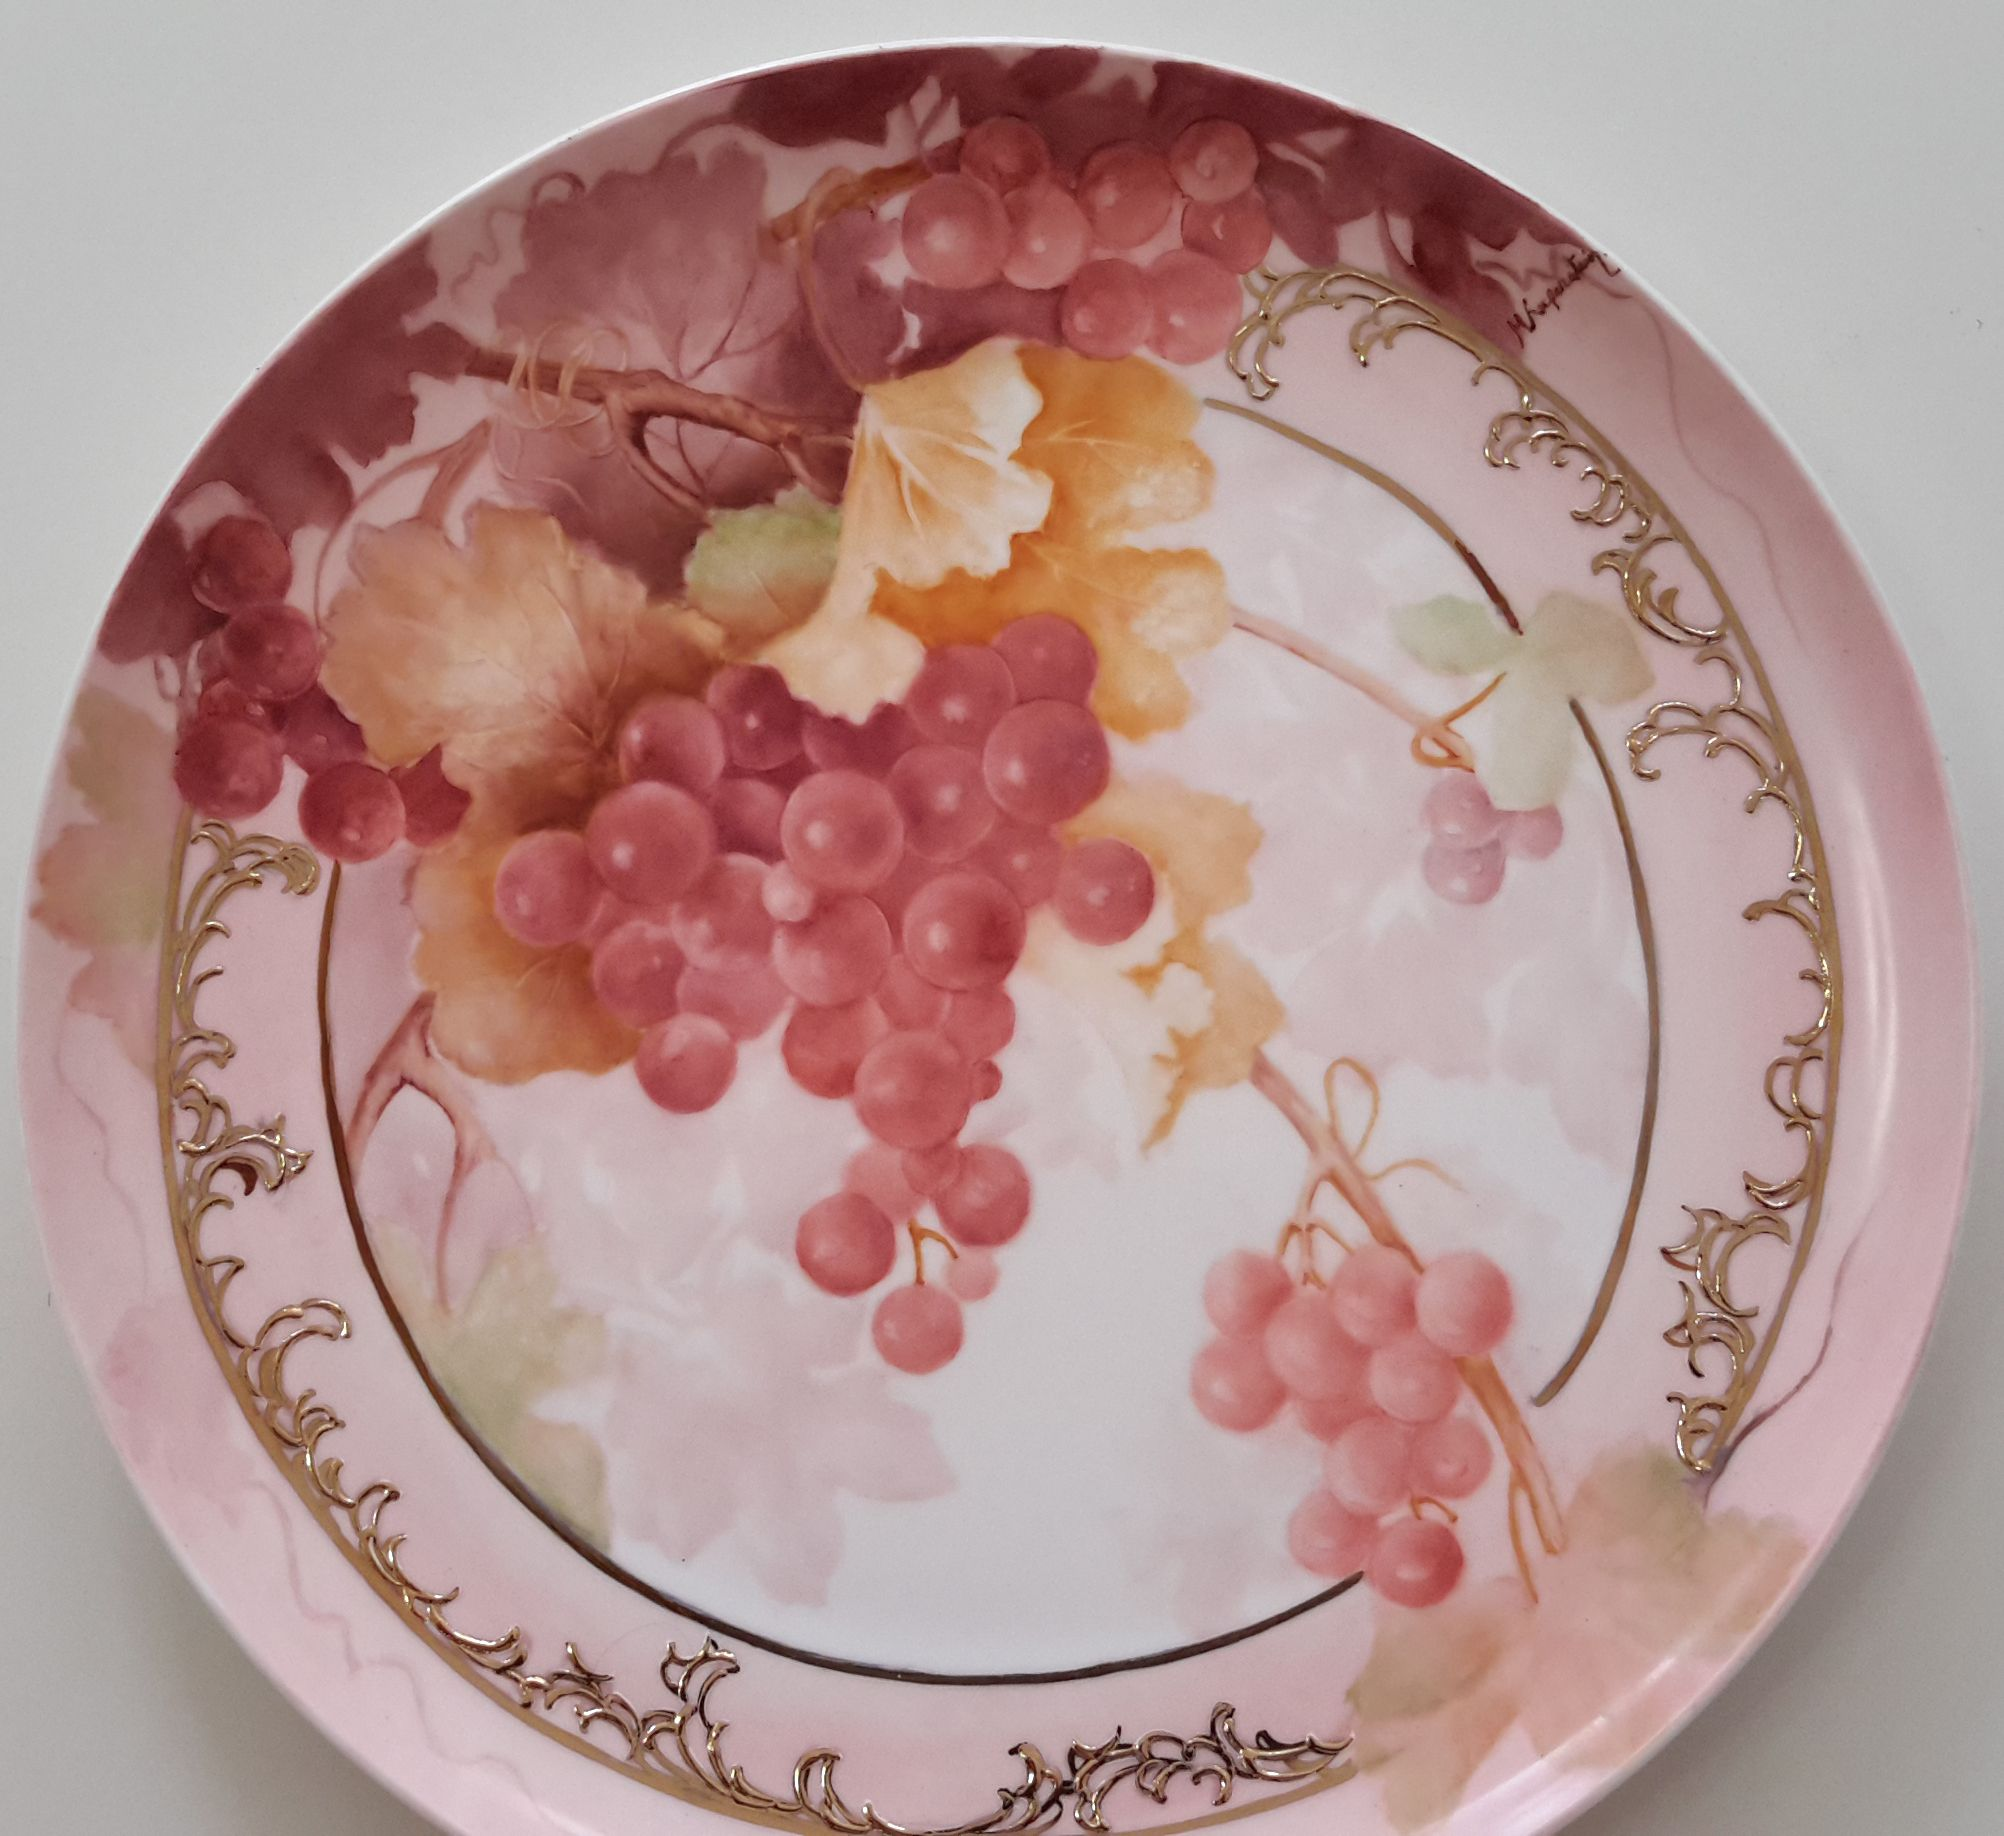 Grapes By Miriam Kuperstein Porcelain Painting Porcelain Art Pretty Plates